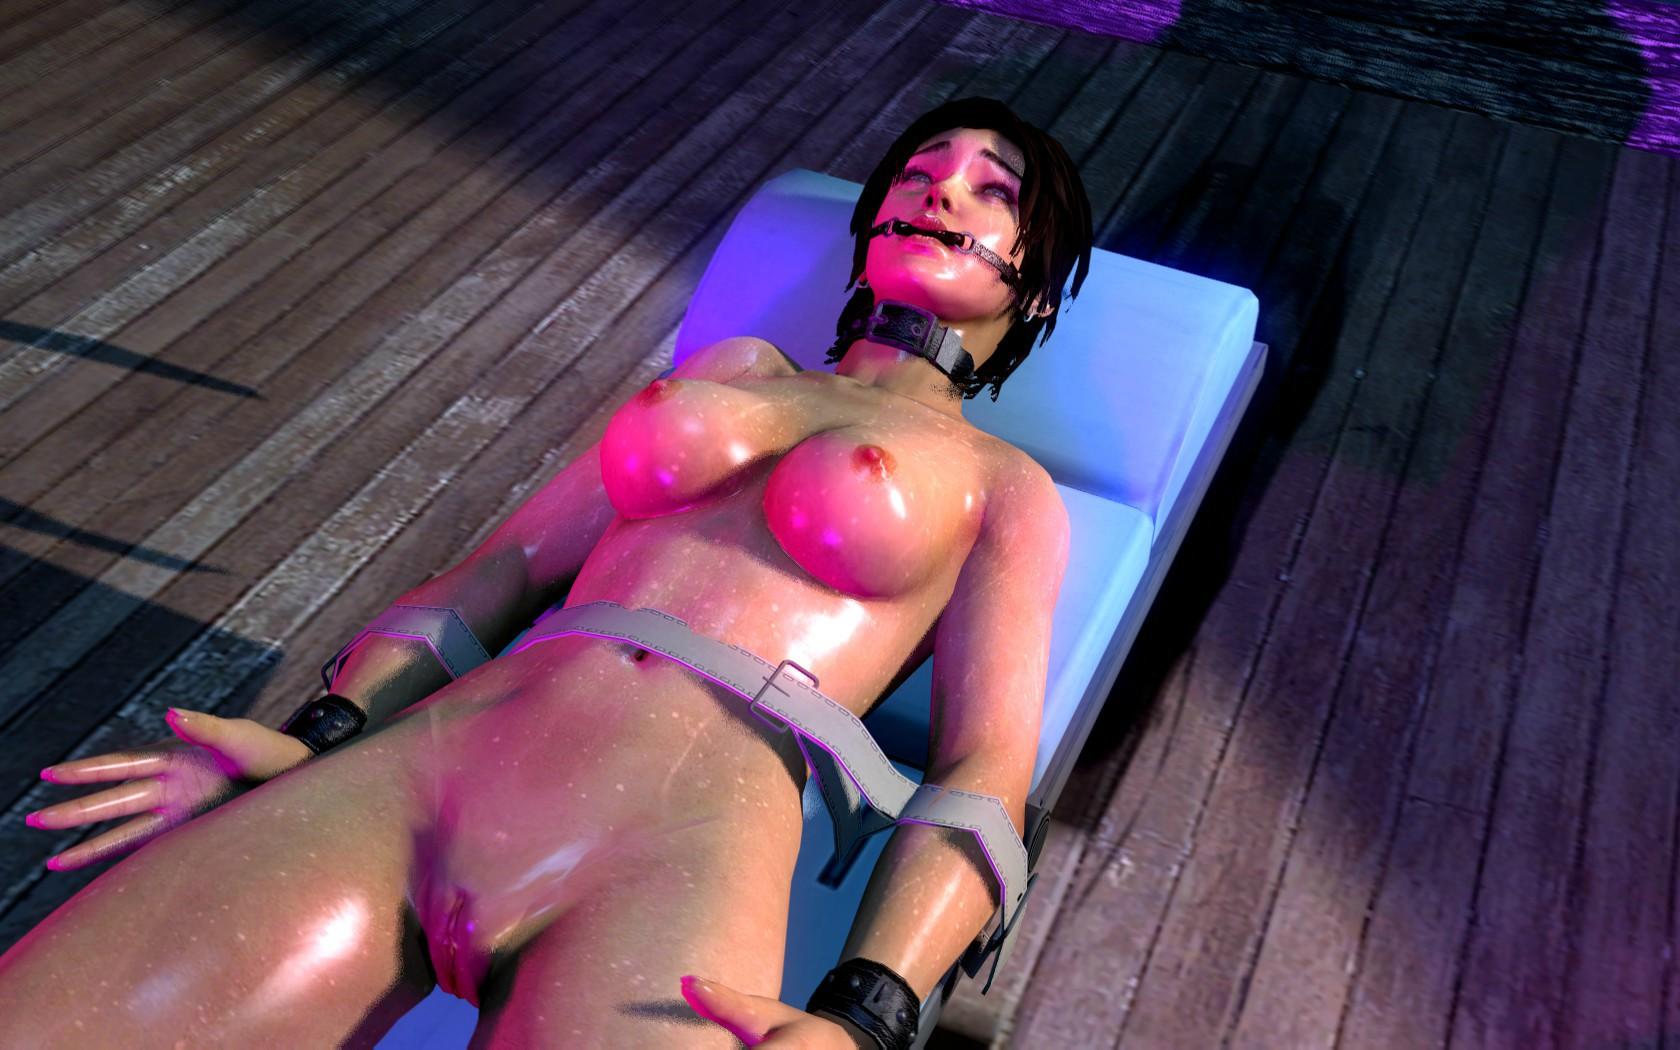 Hot raider sex mod adult video